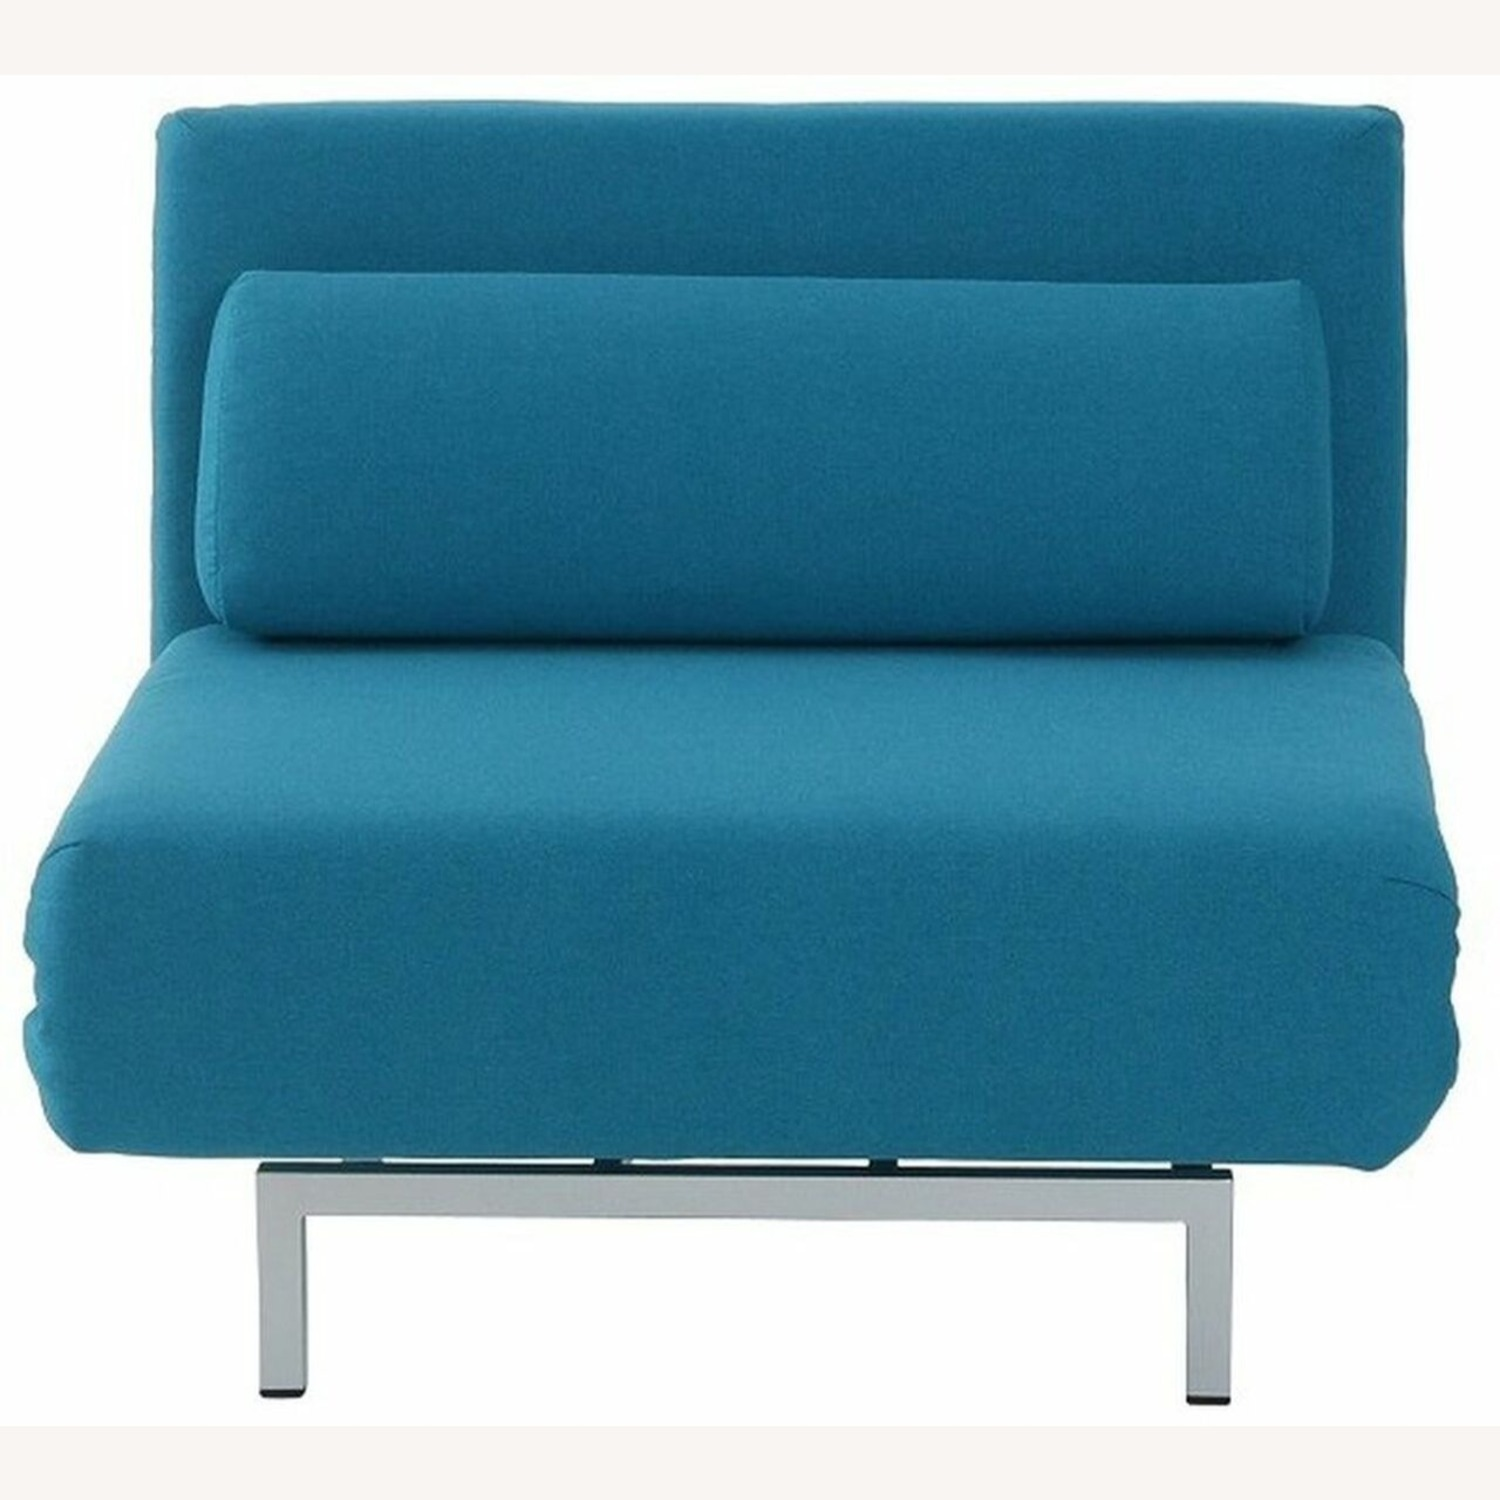 Convertible Sofa Bed In Teal Fabric Upholstery - image-1